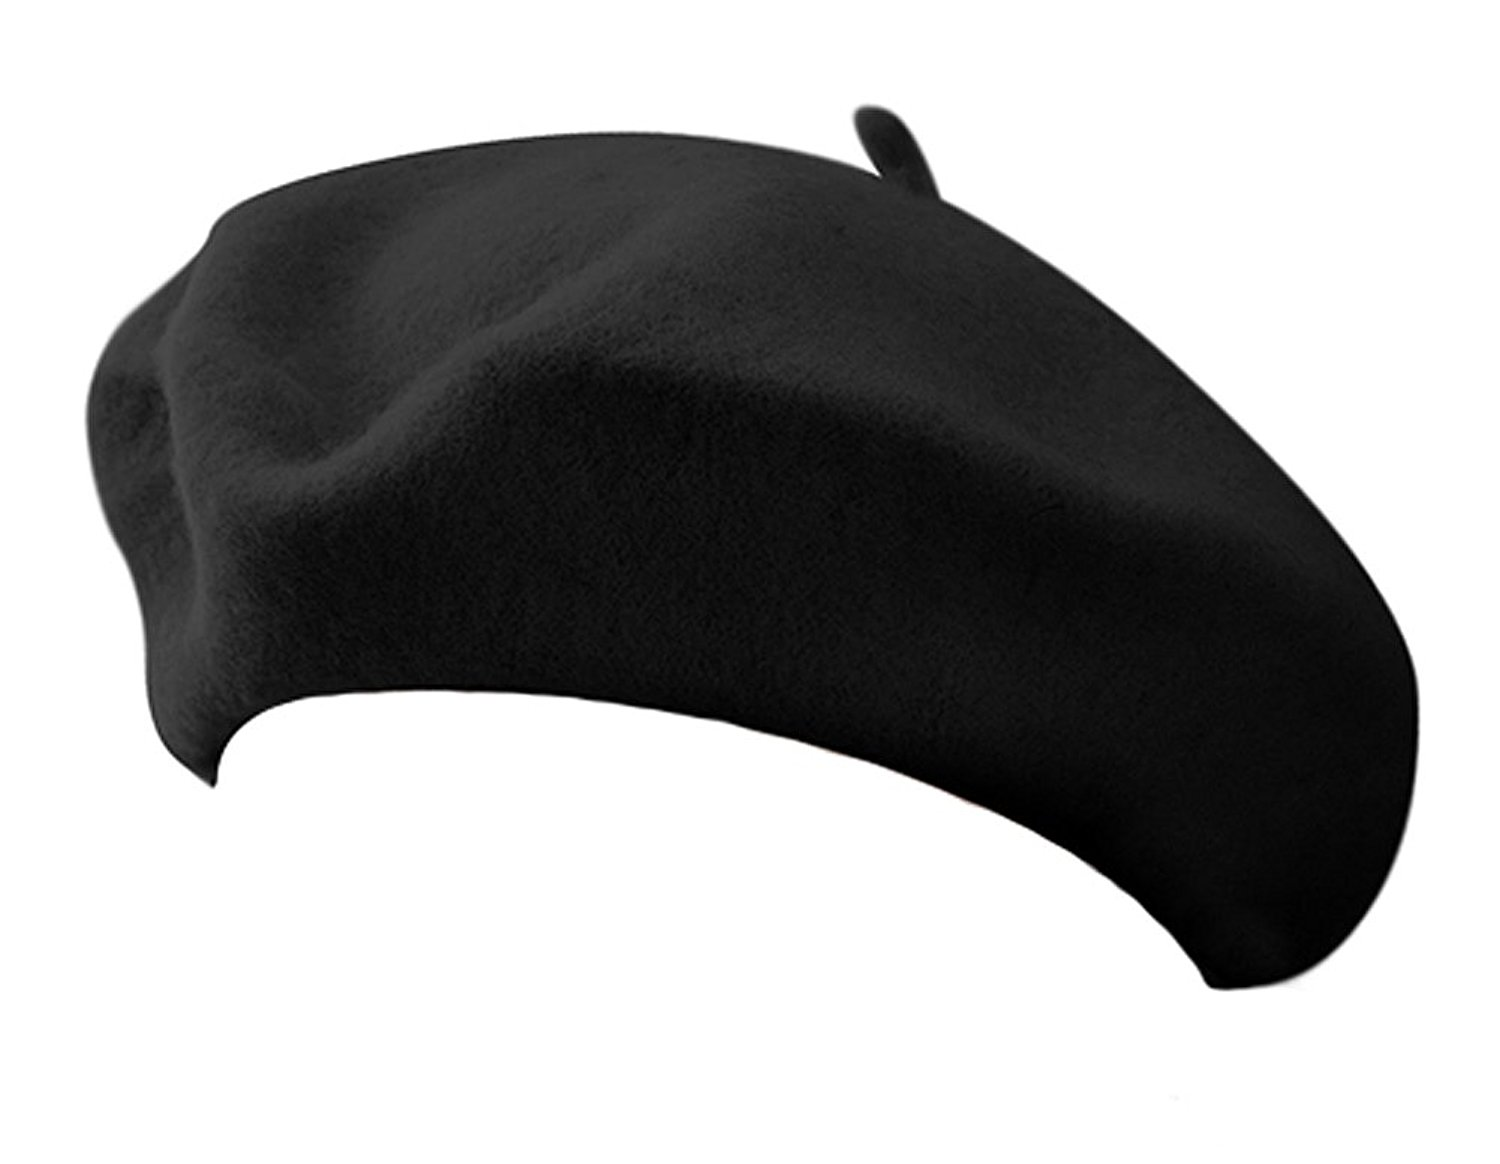 Free French Hat Png, Download Free Clip Art, Free Clip Art.